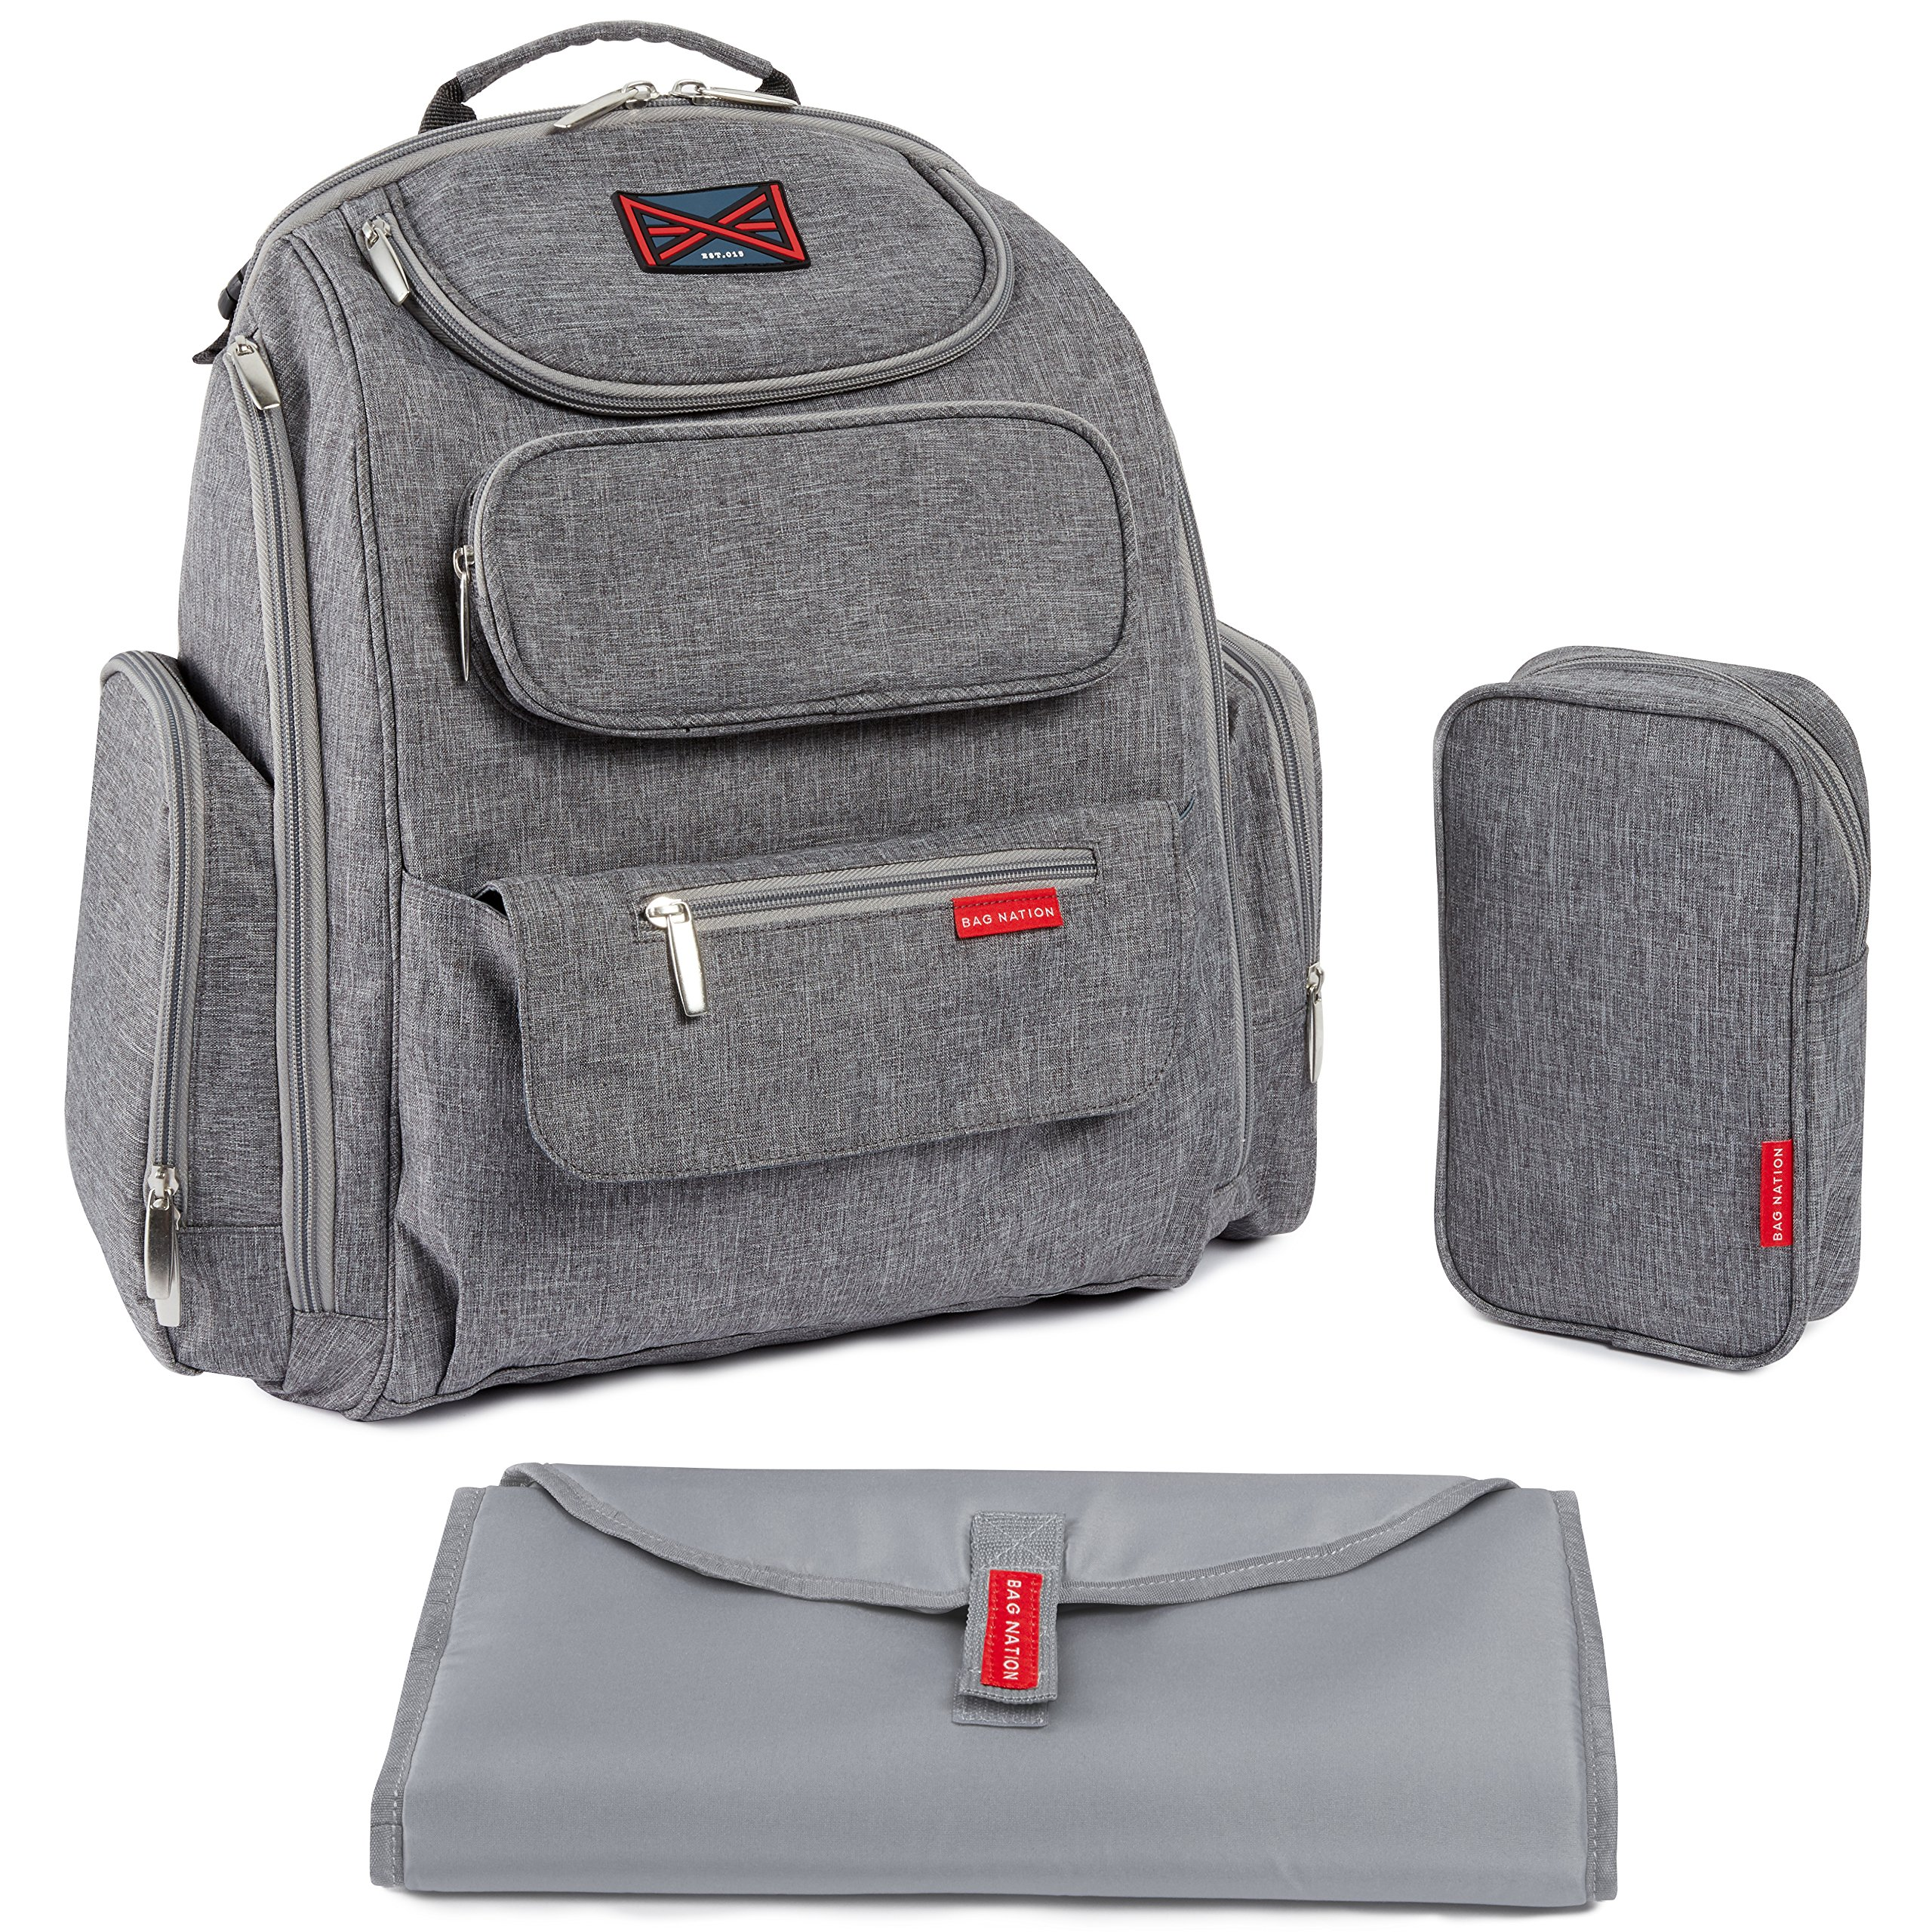 Bag Nation Diaper Bag Backpack with Stroller Straps, Changing Pad and Sundry Bag - Grey by Bag Nation